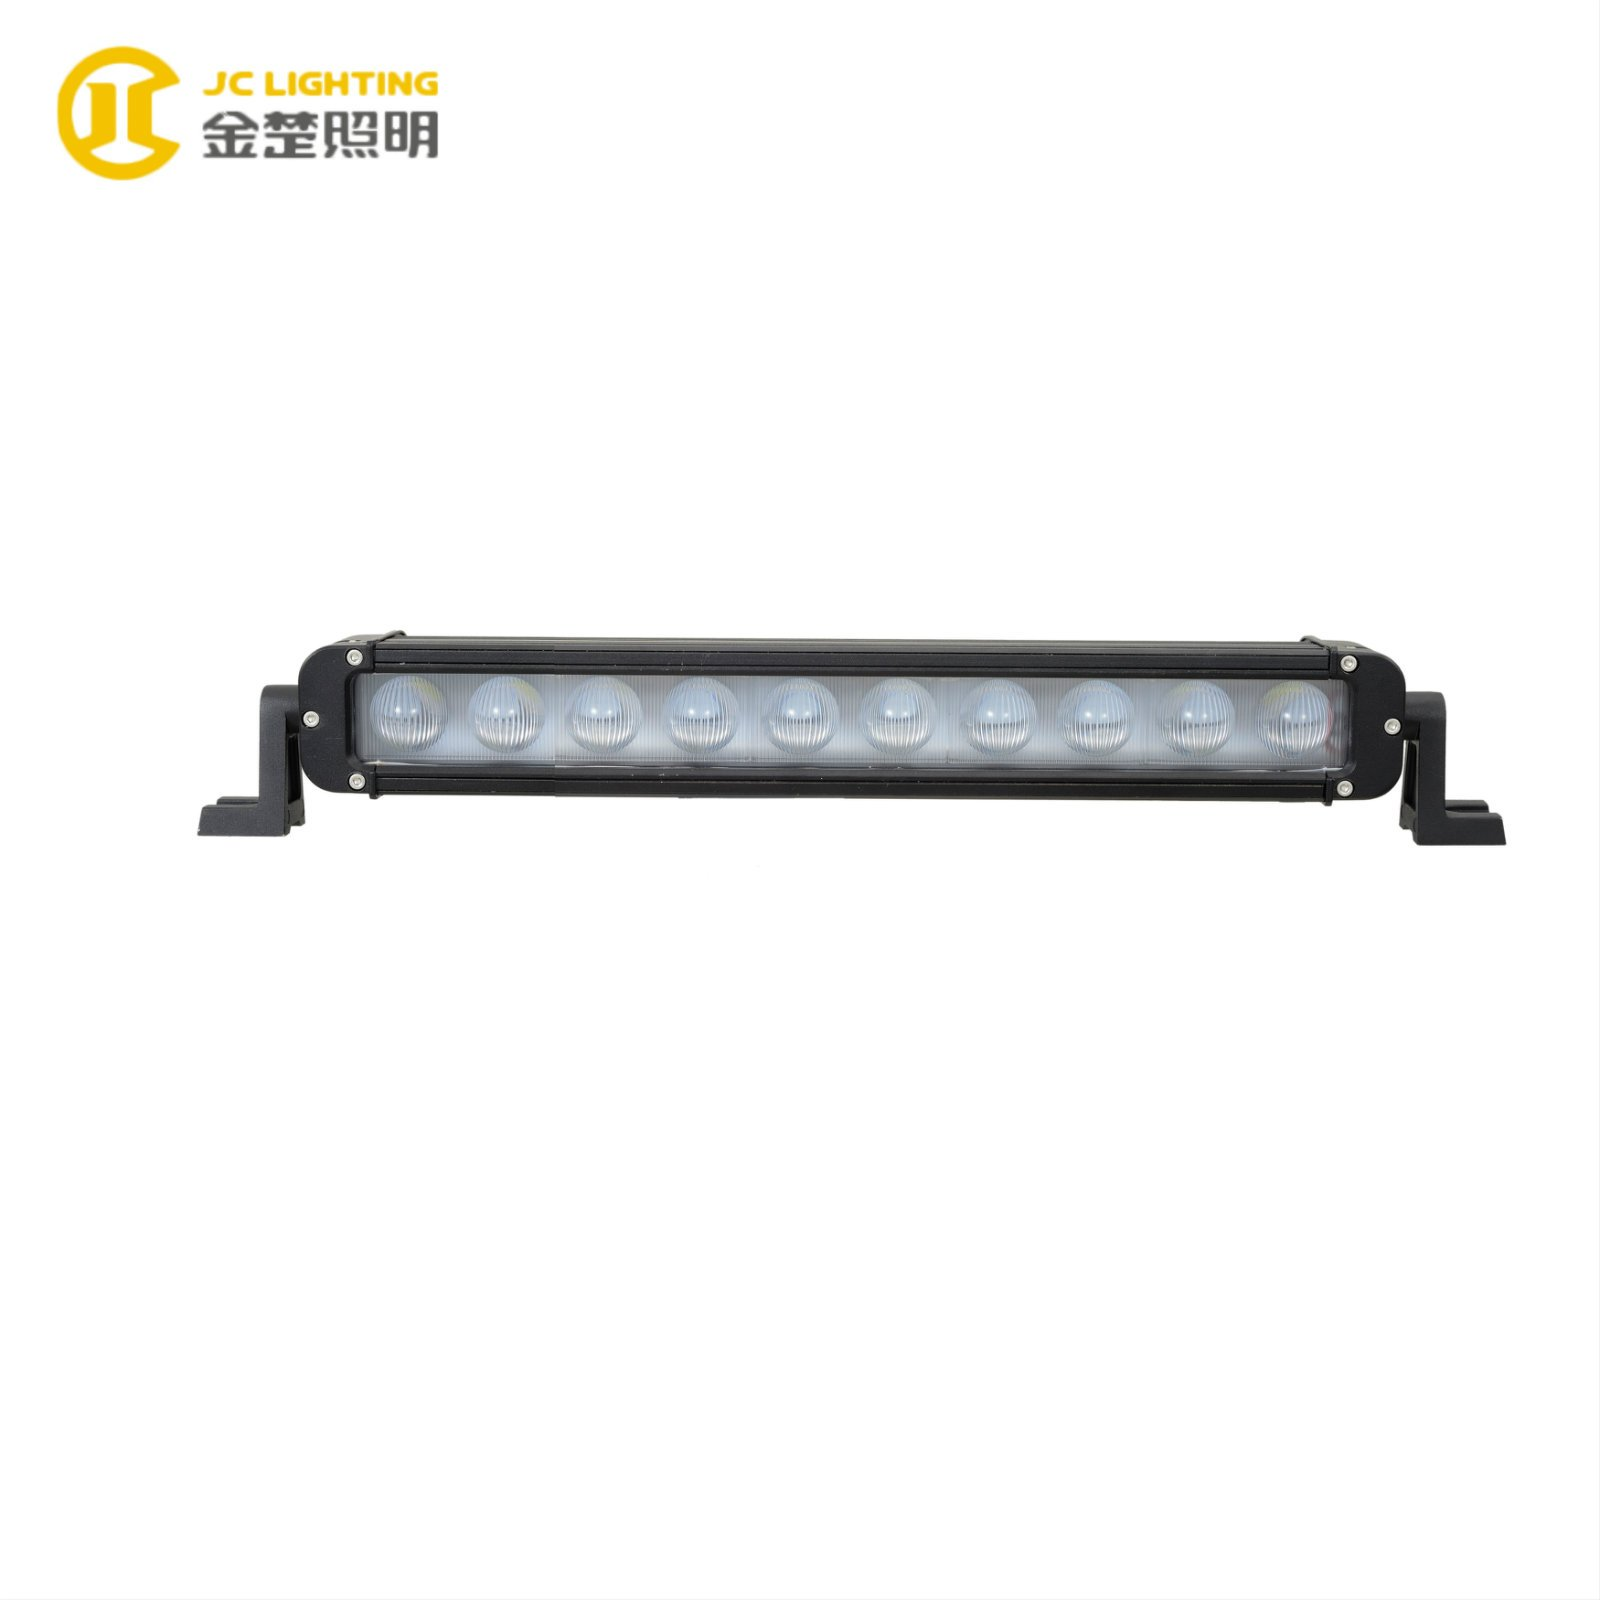 JINCHU JC10118A-100W High Quality 100W 7500LM 17inches Cree 4d LED Light Bar LED Light Bar image69